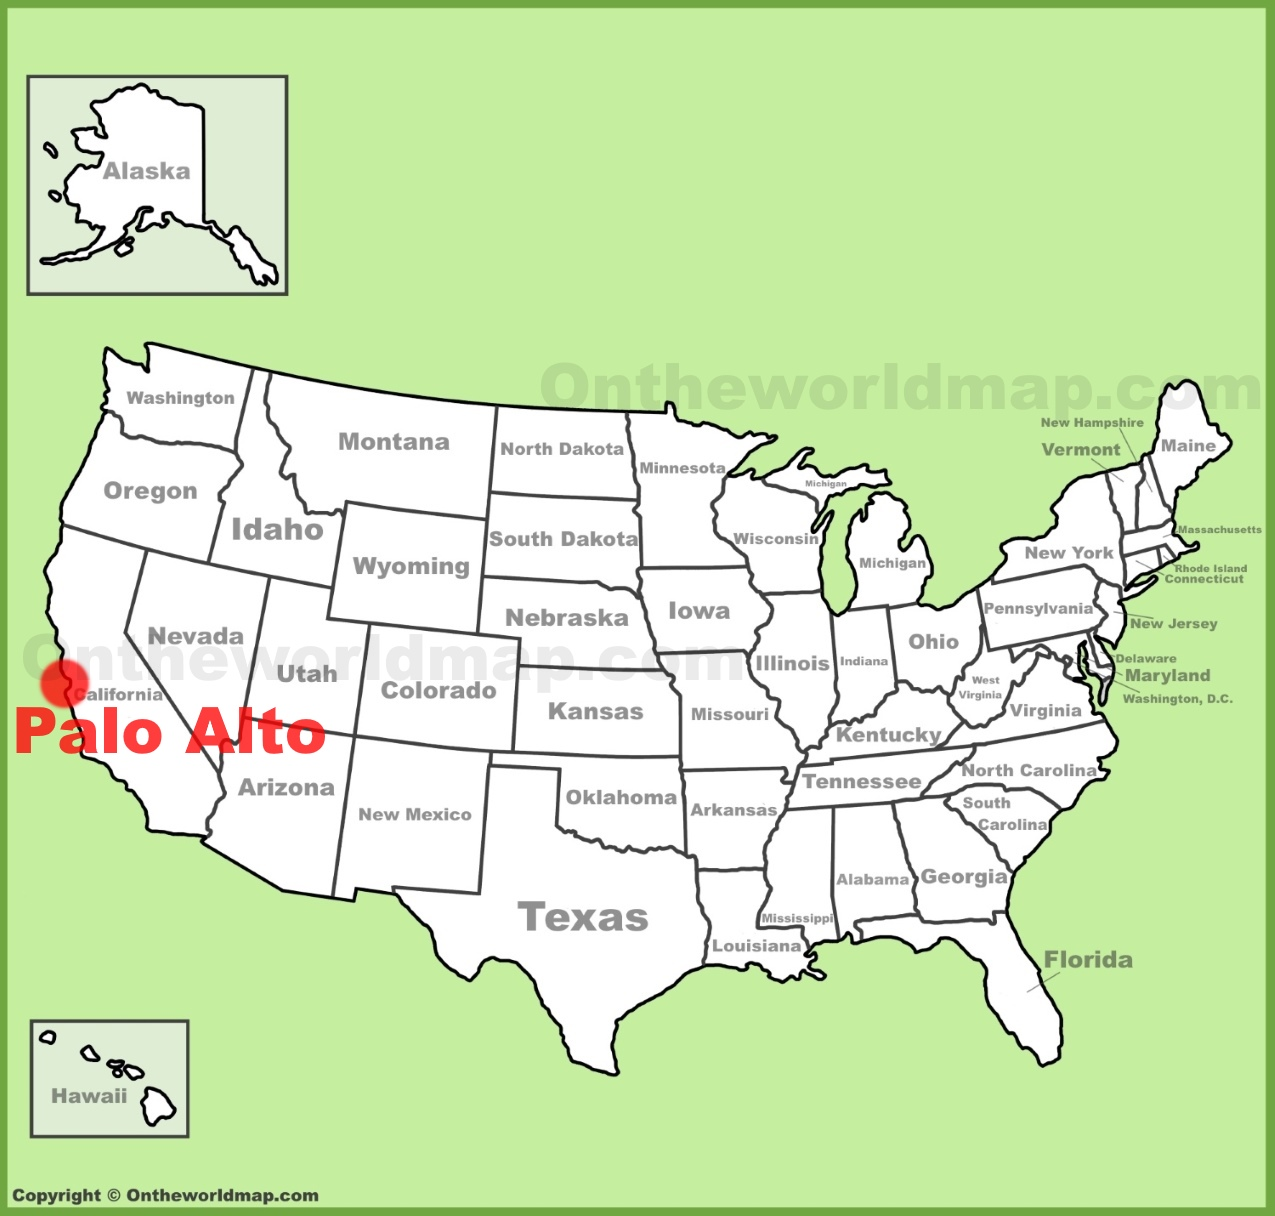 Palo Alto location on the US Map